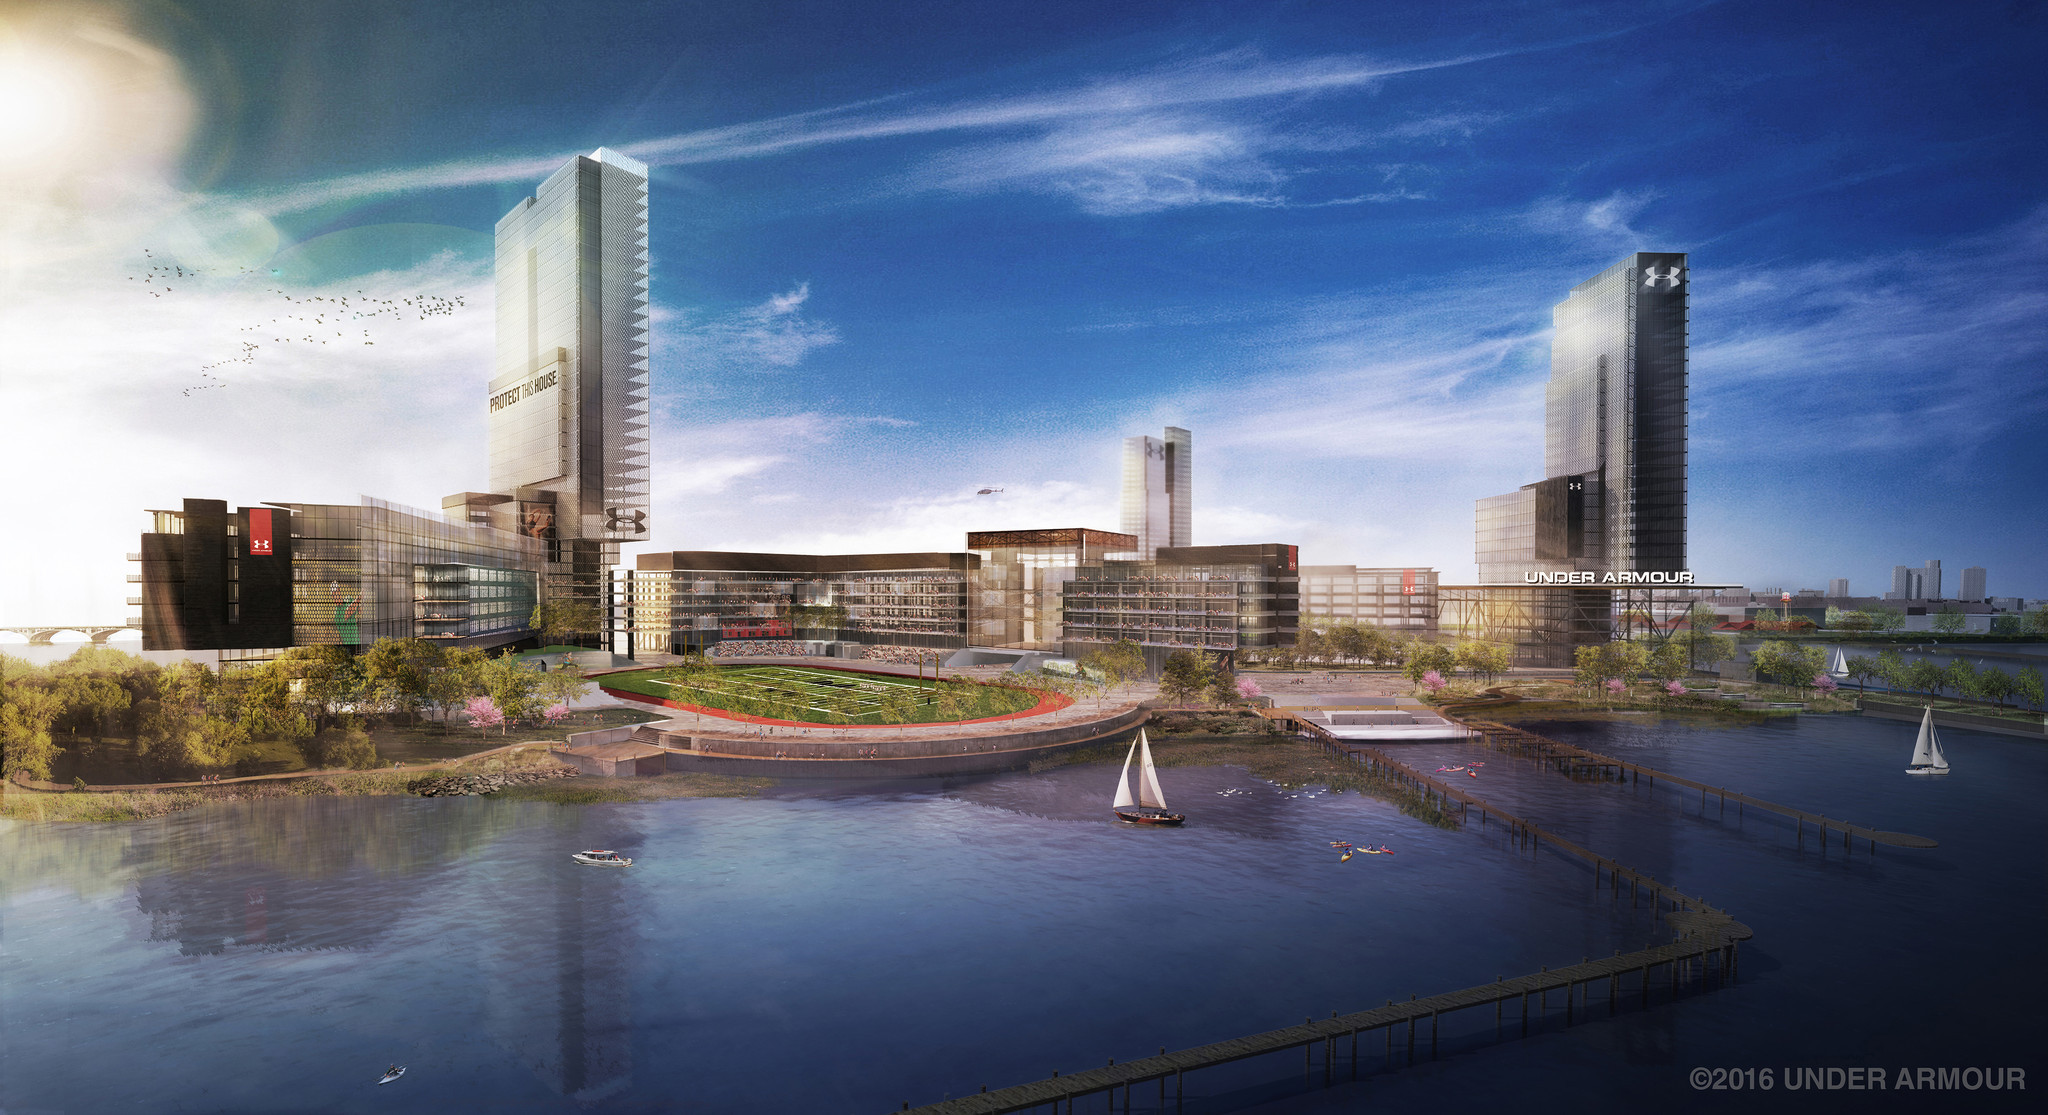 Under armour unveils plans for new port covington headquarters under armour unveils plans for new port covington headquarters baltimore sun malvernweather Image collections